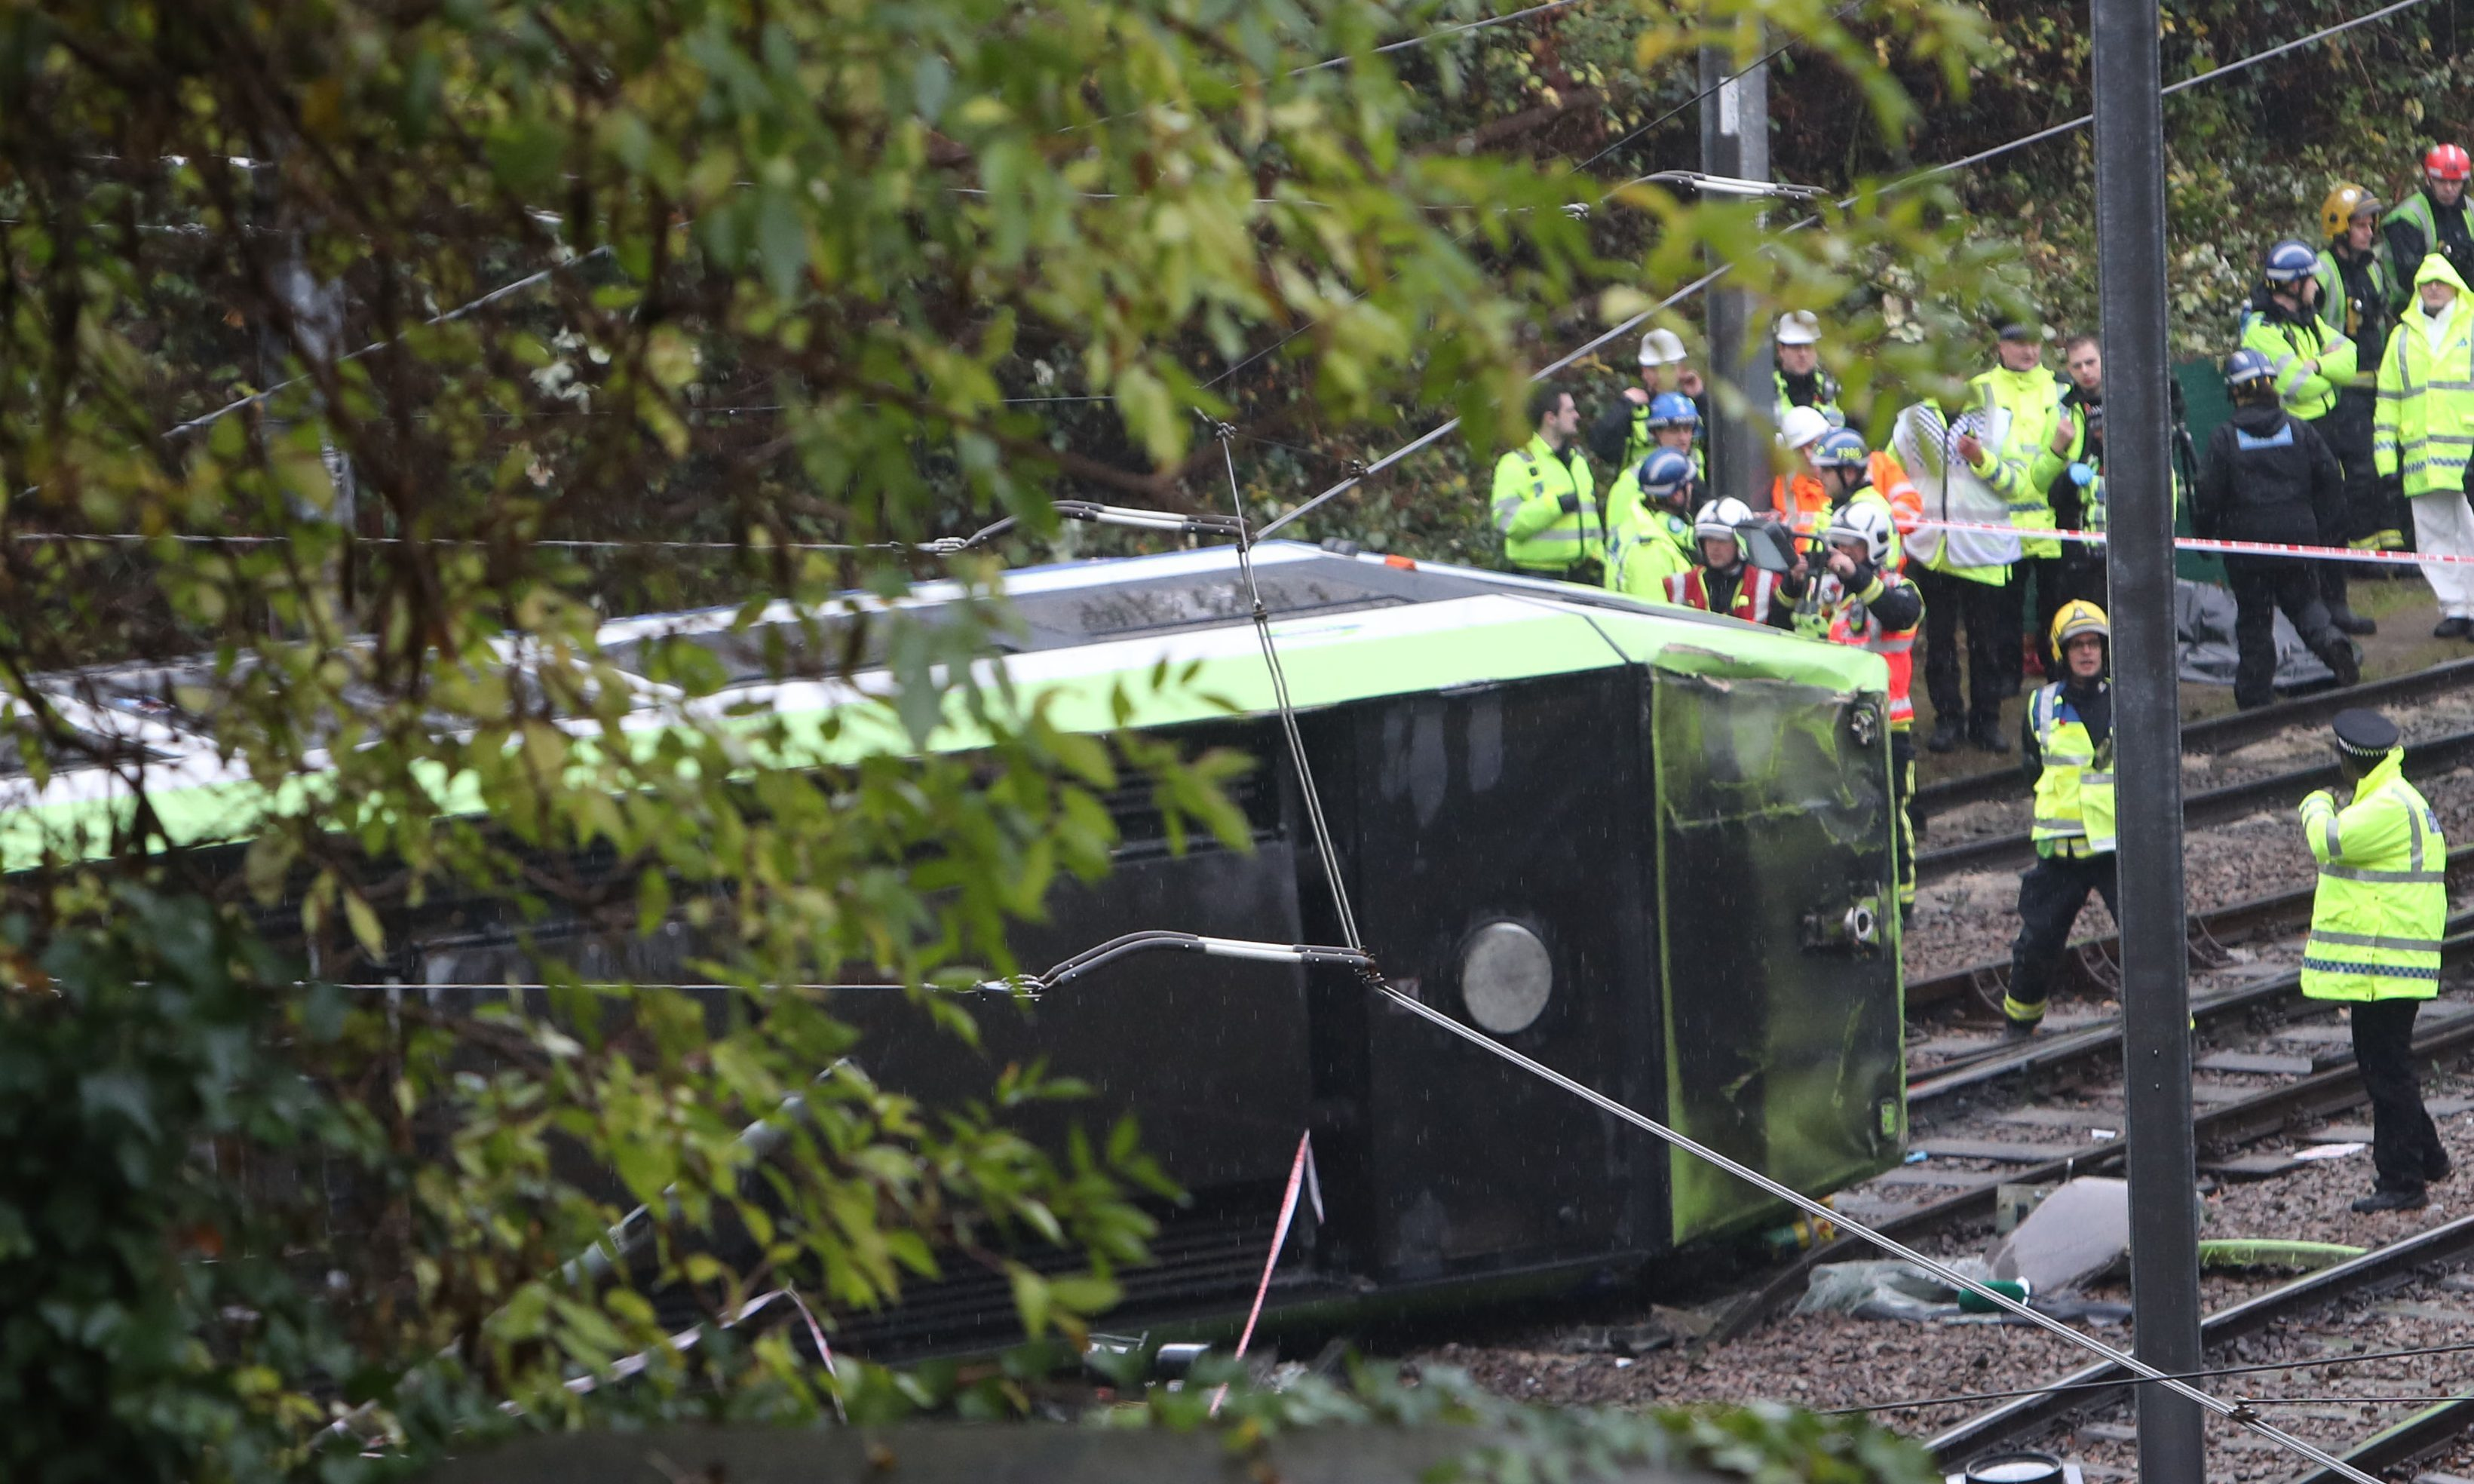 The scene after a tram overturned in Croydon, south London.